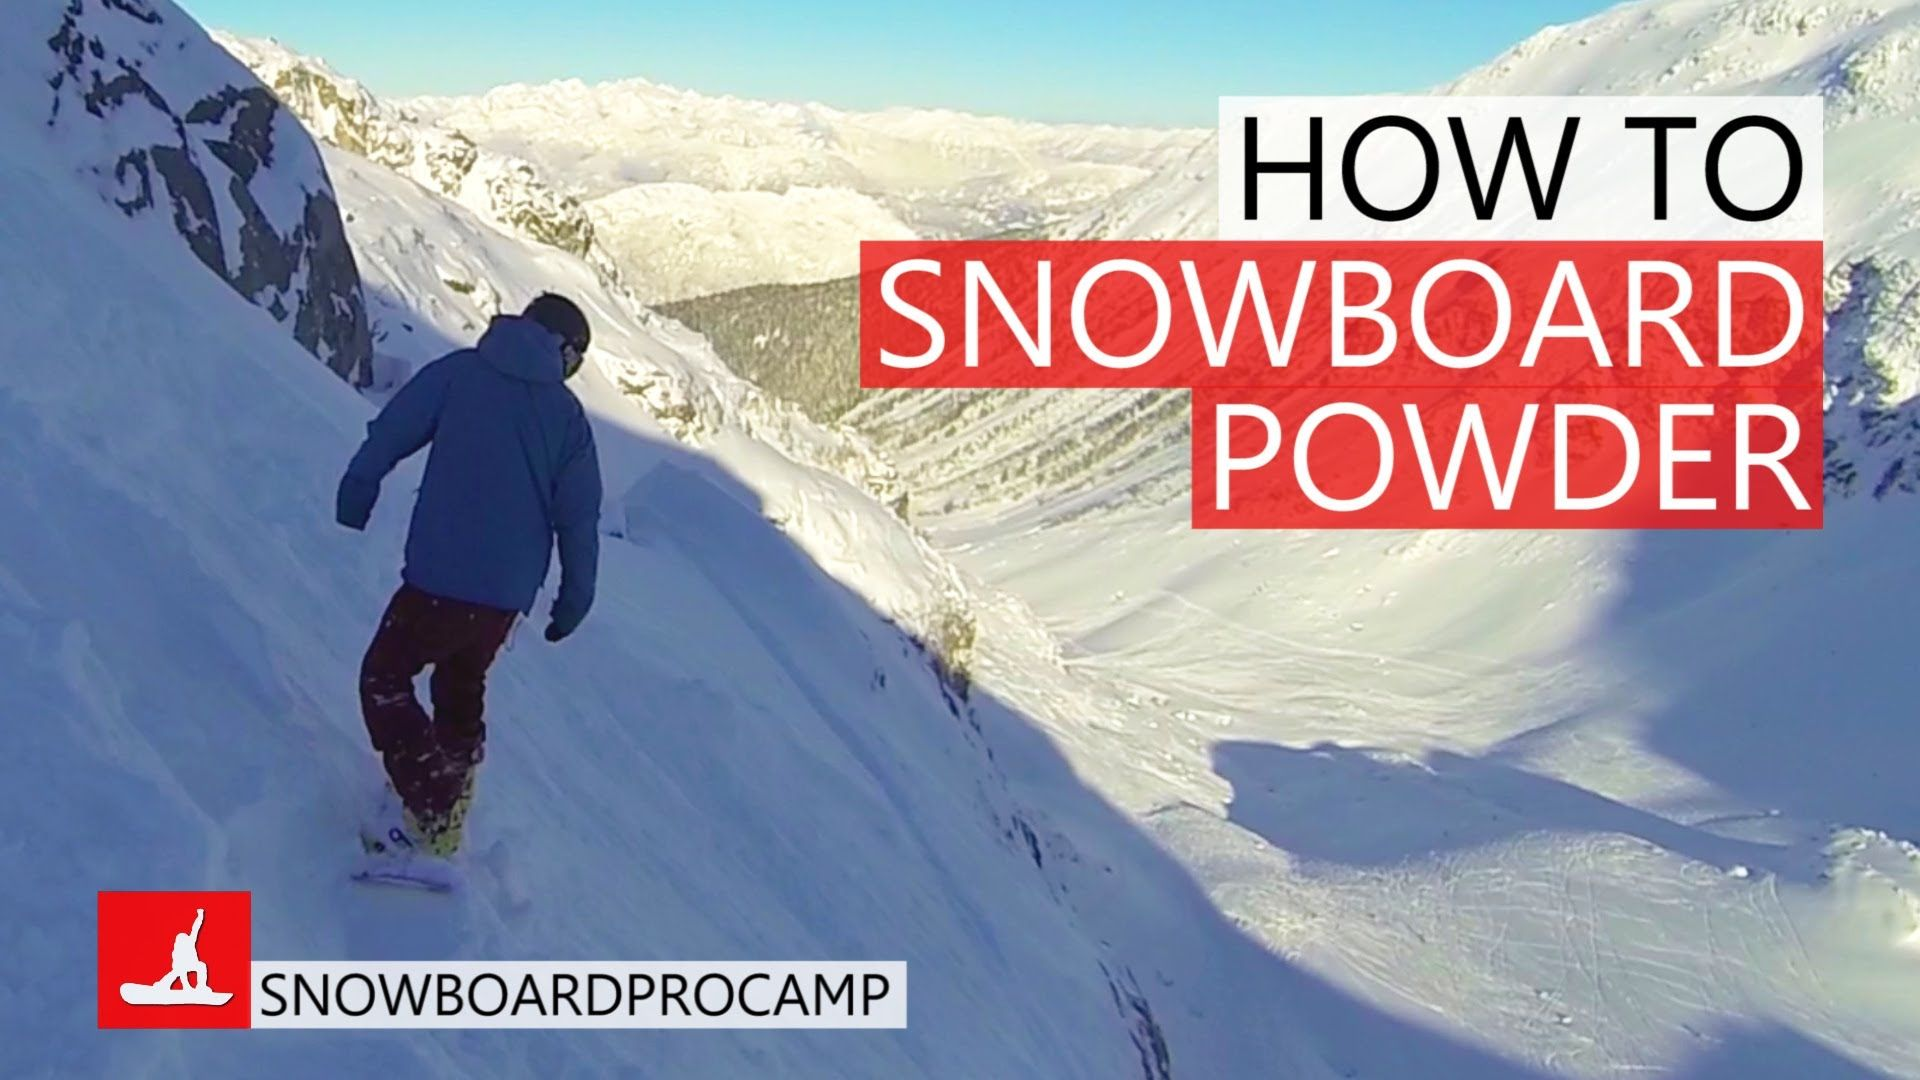 How to Snowboard in Steep Powder How to Snowboard